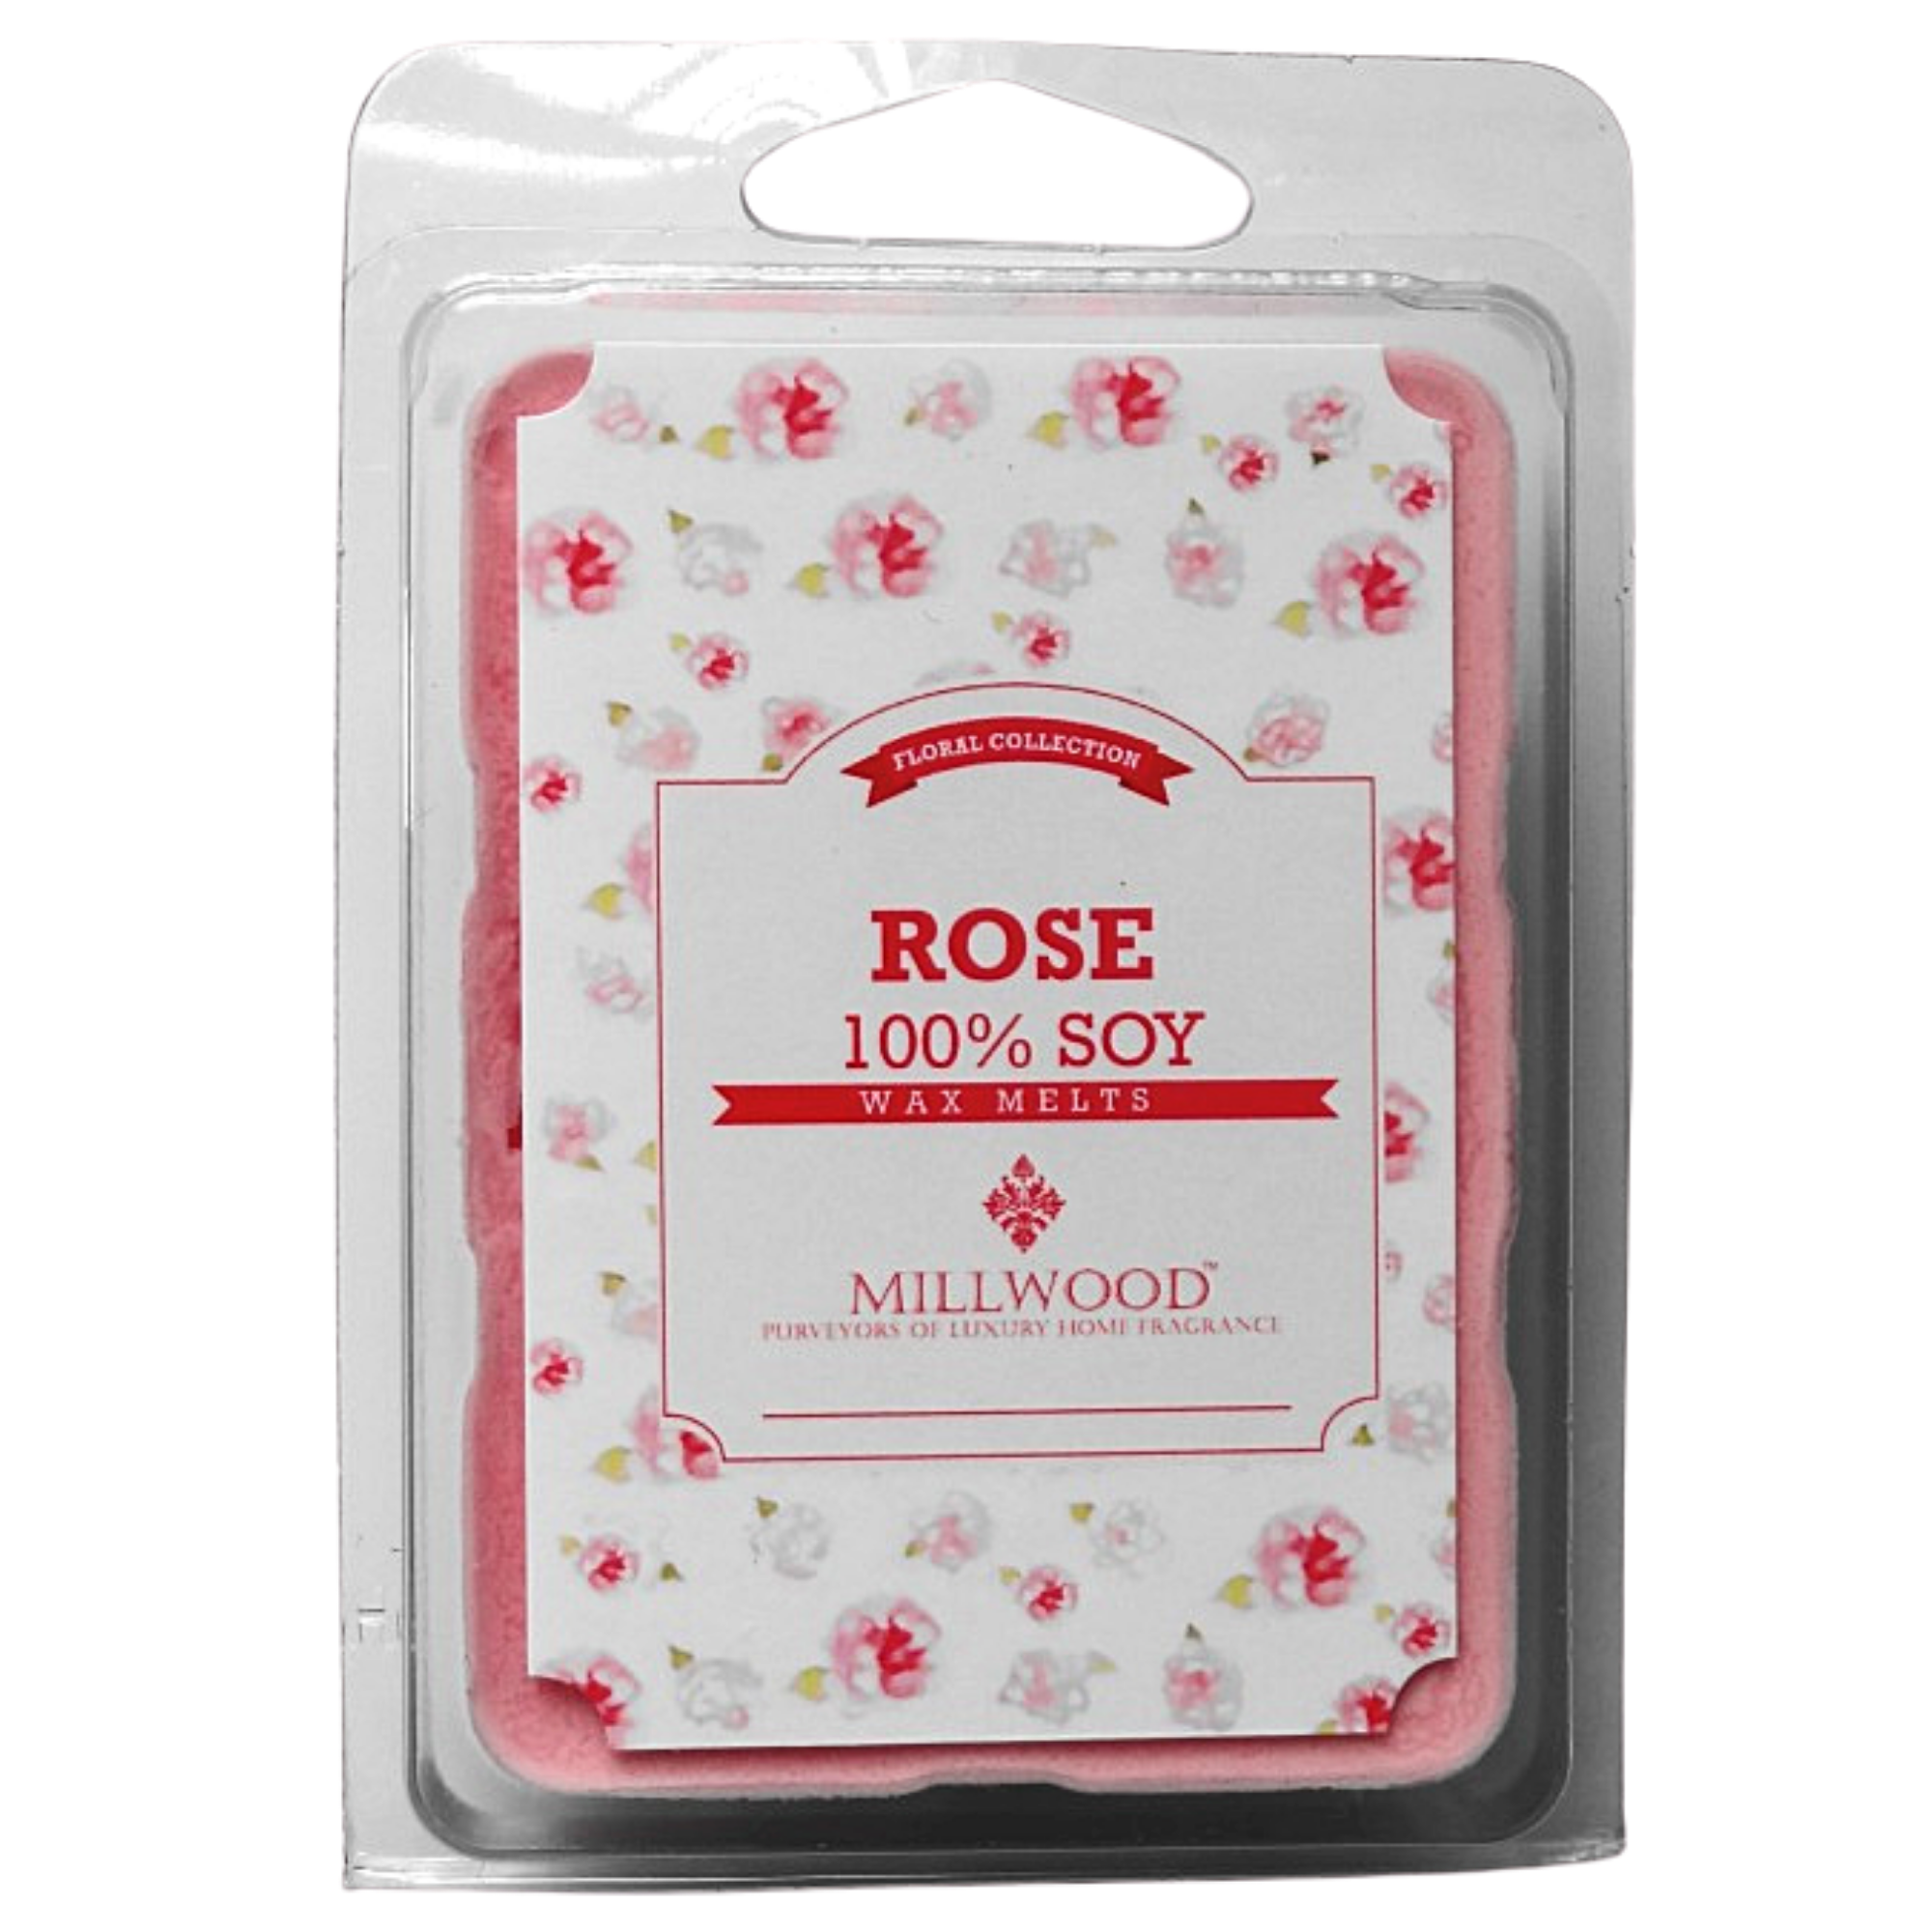 Rose Wax Melts by Millwood Candles